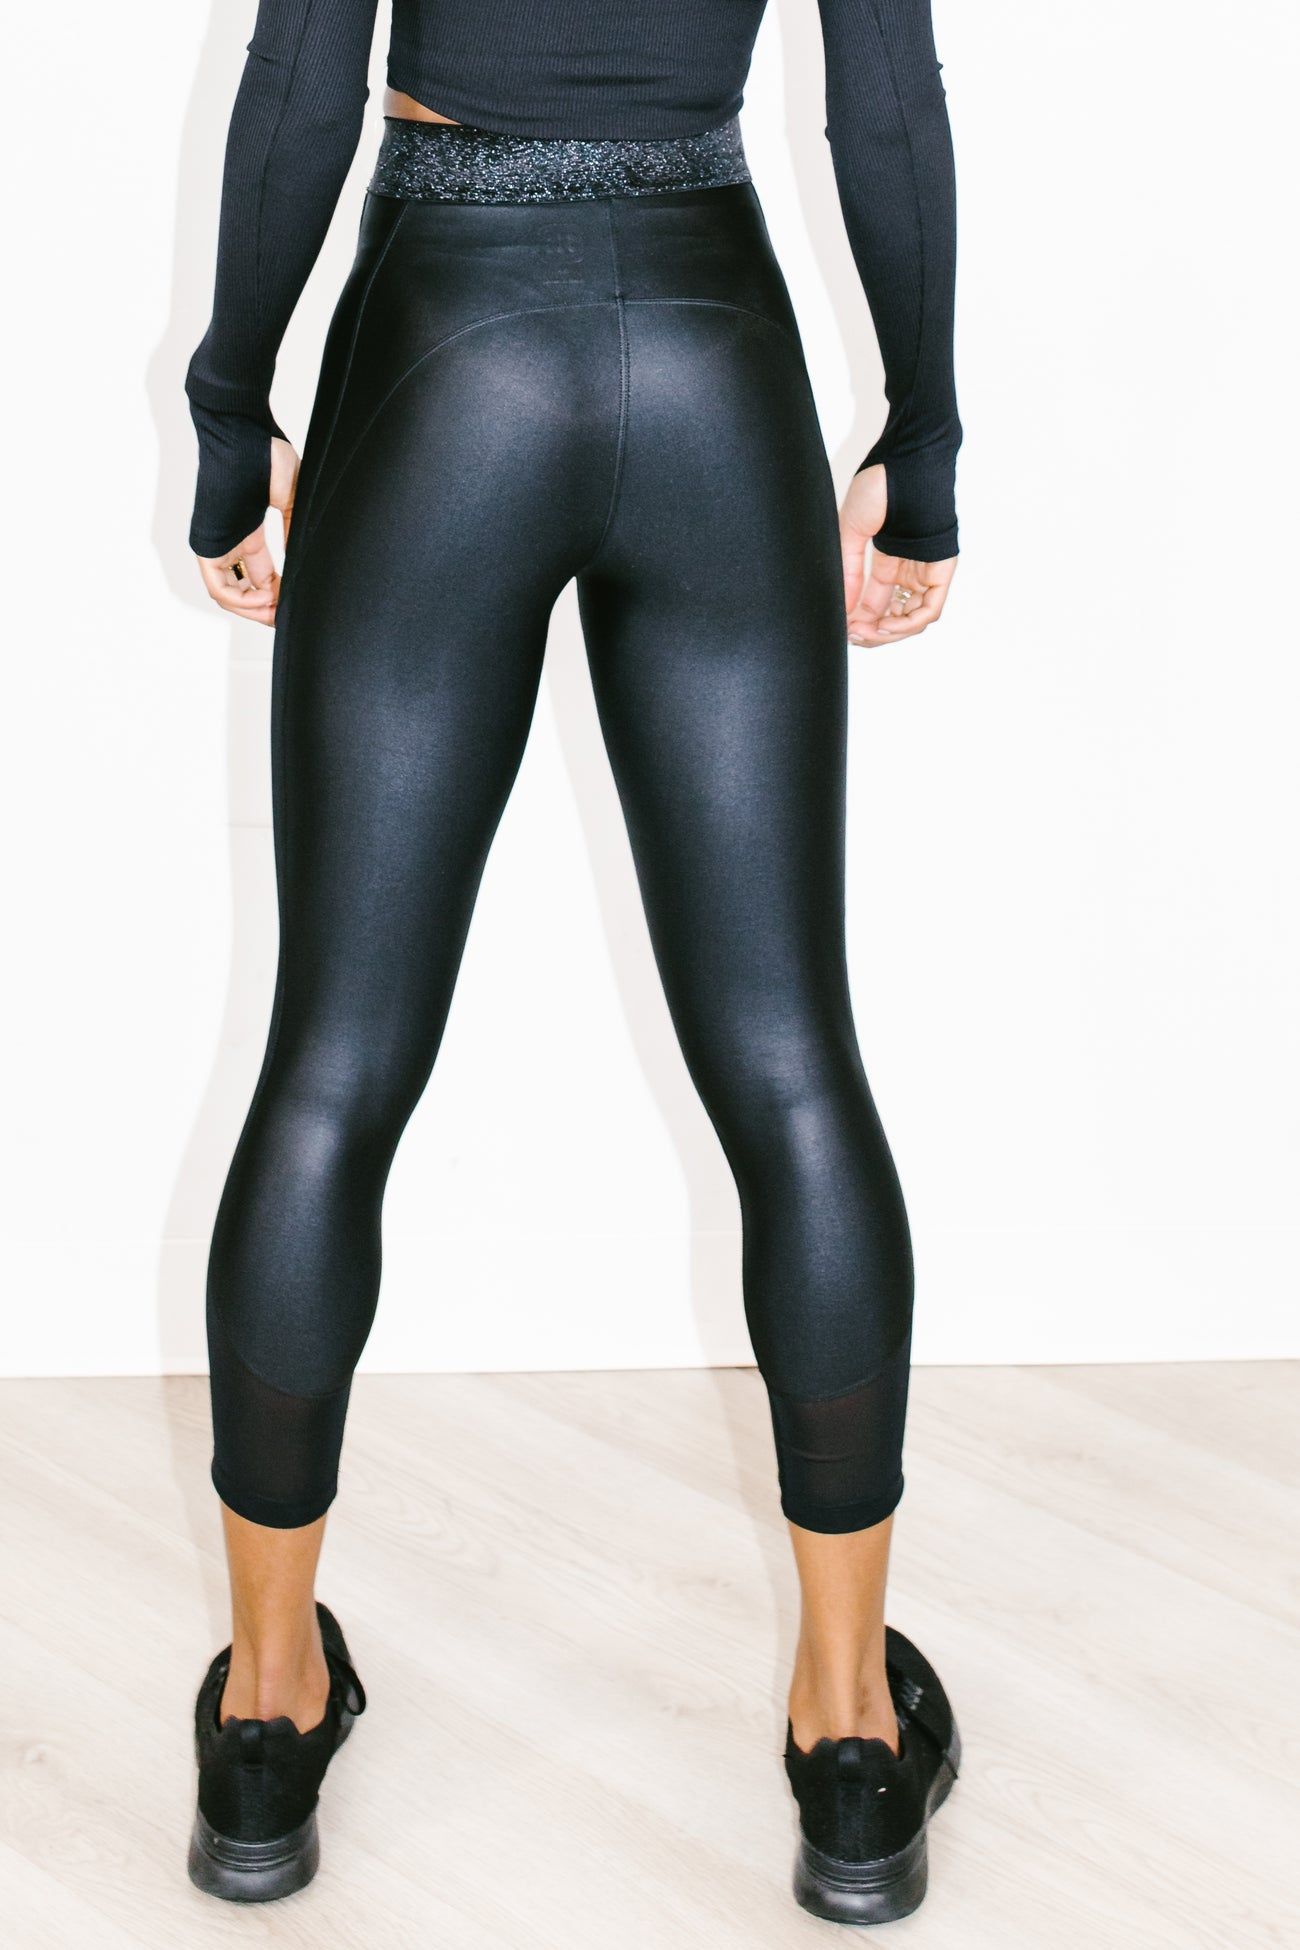 Derby Capri in Black